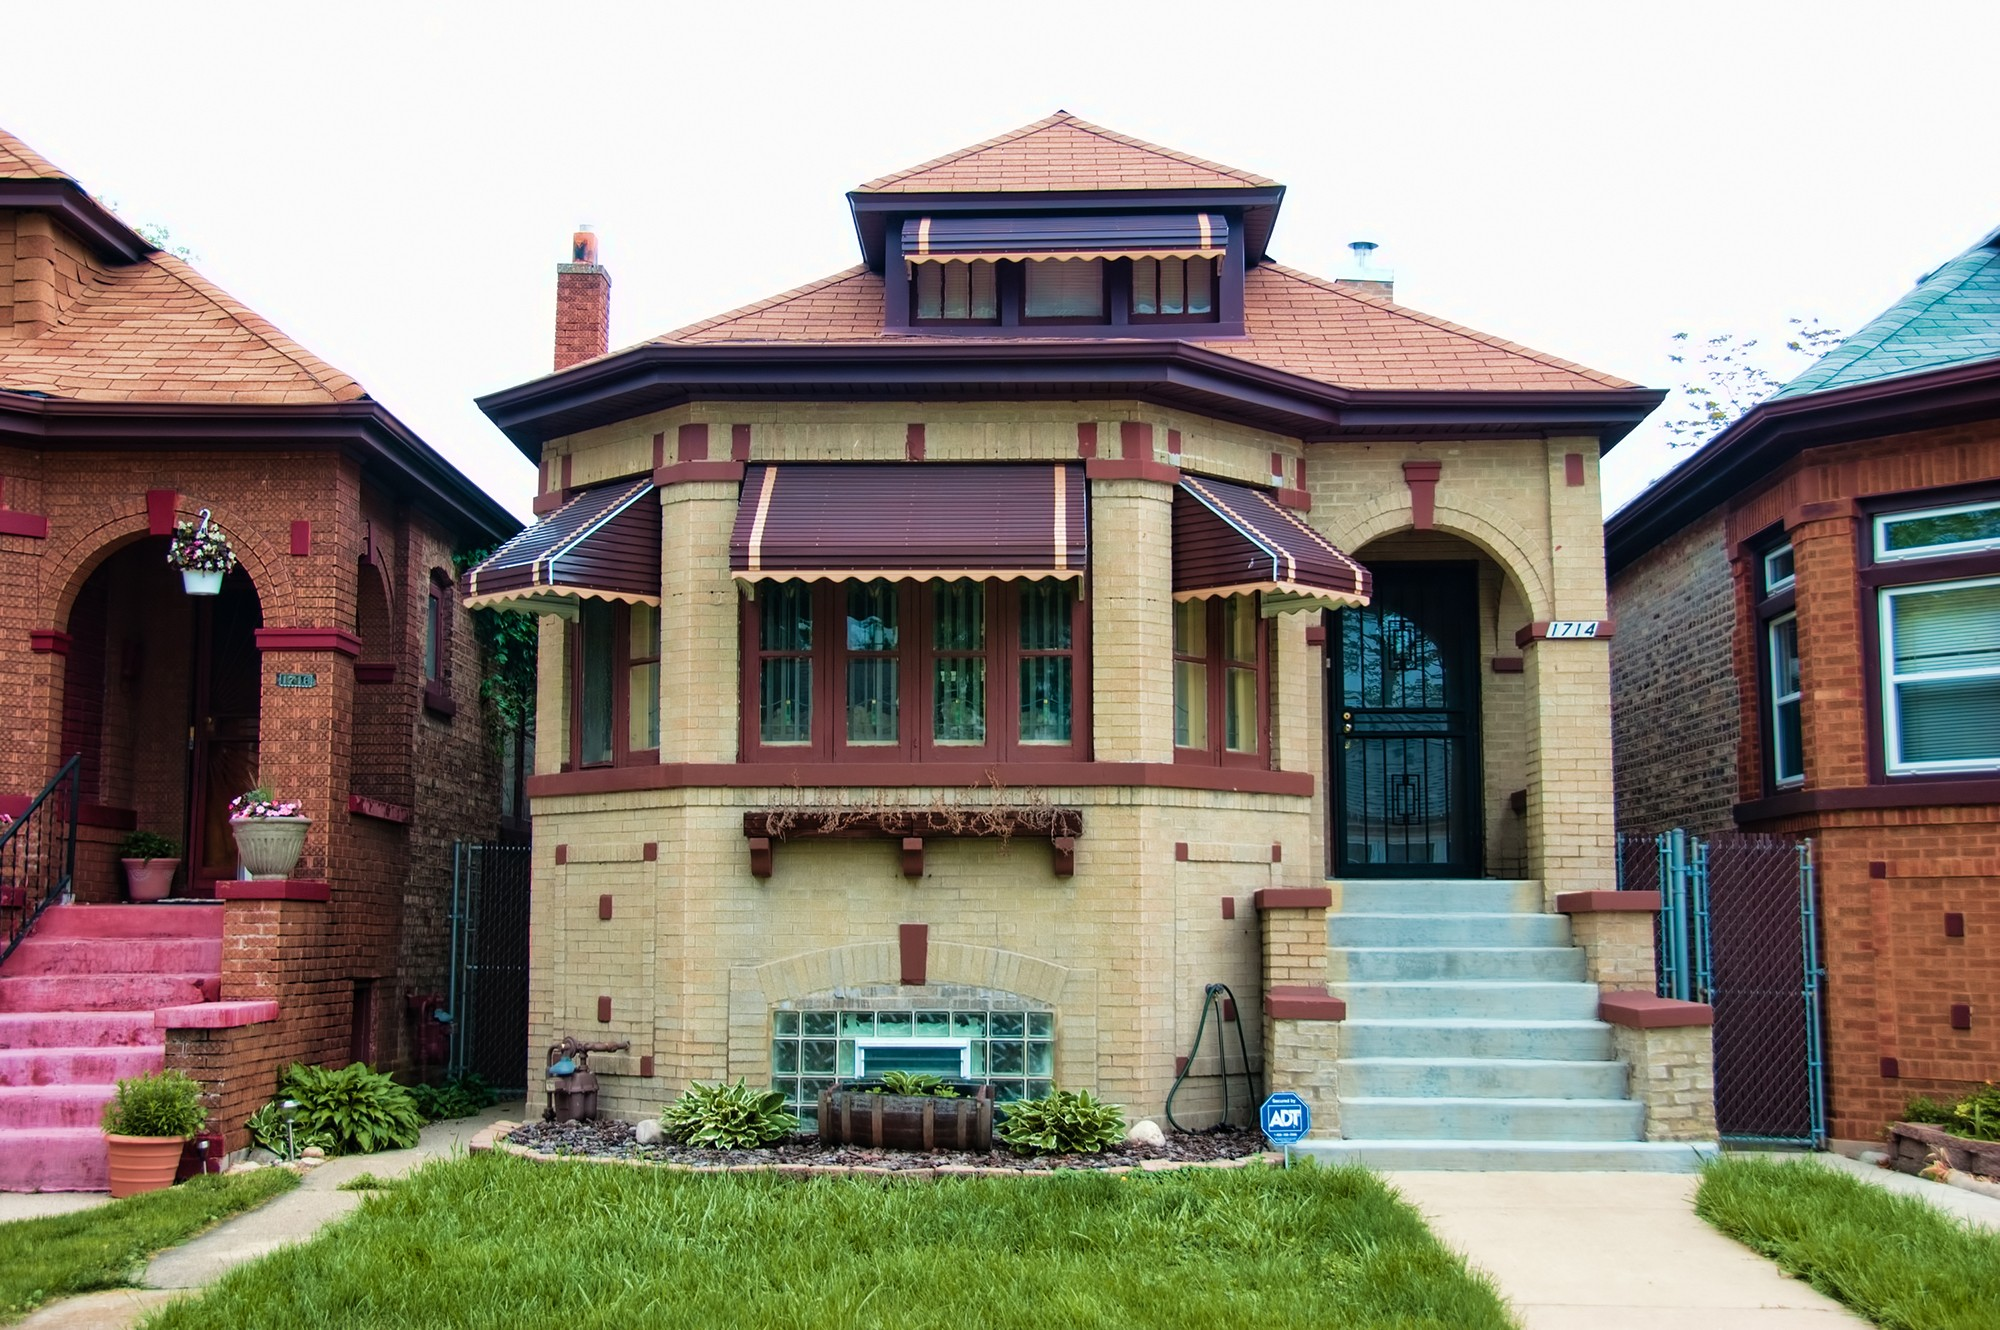 chicago bungalow · buildings of chicago · chicago architecture